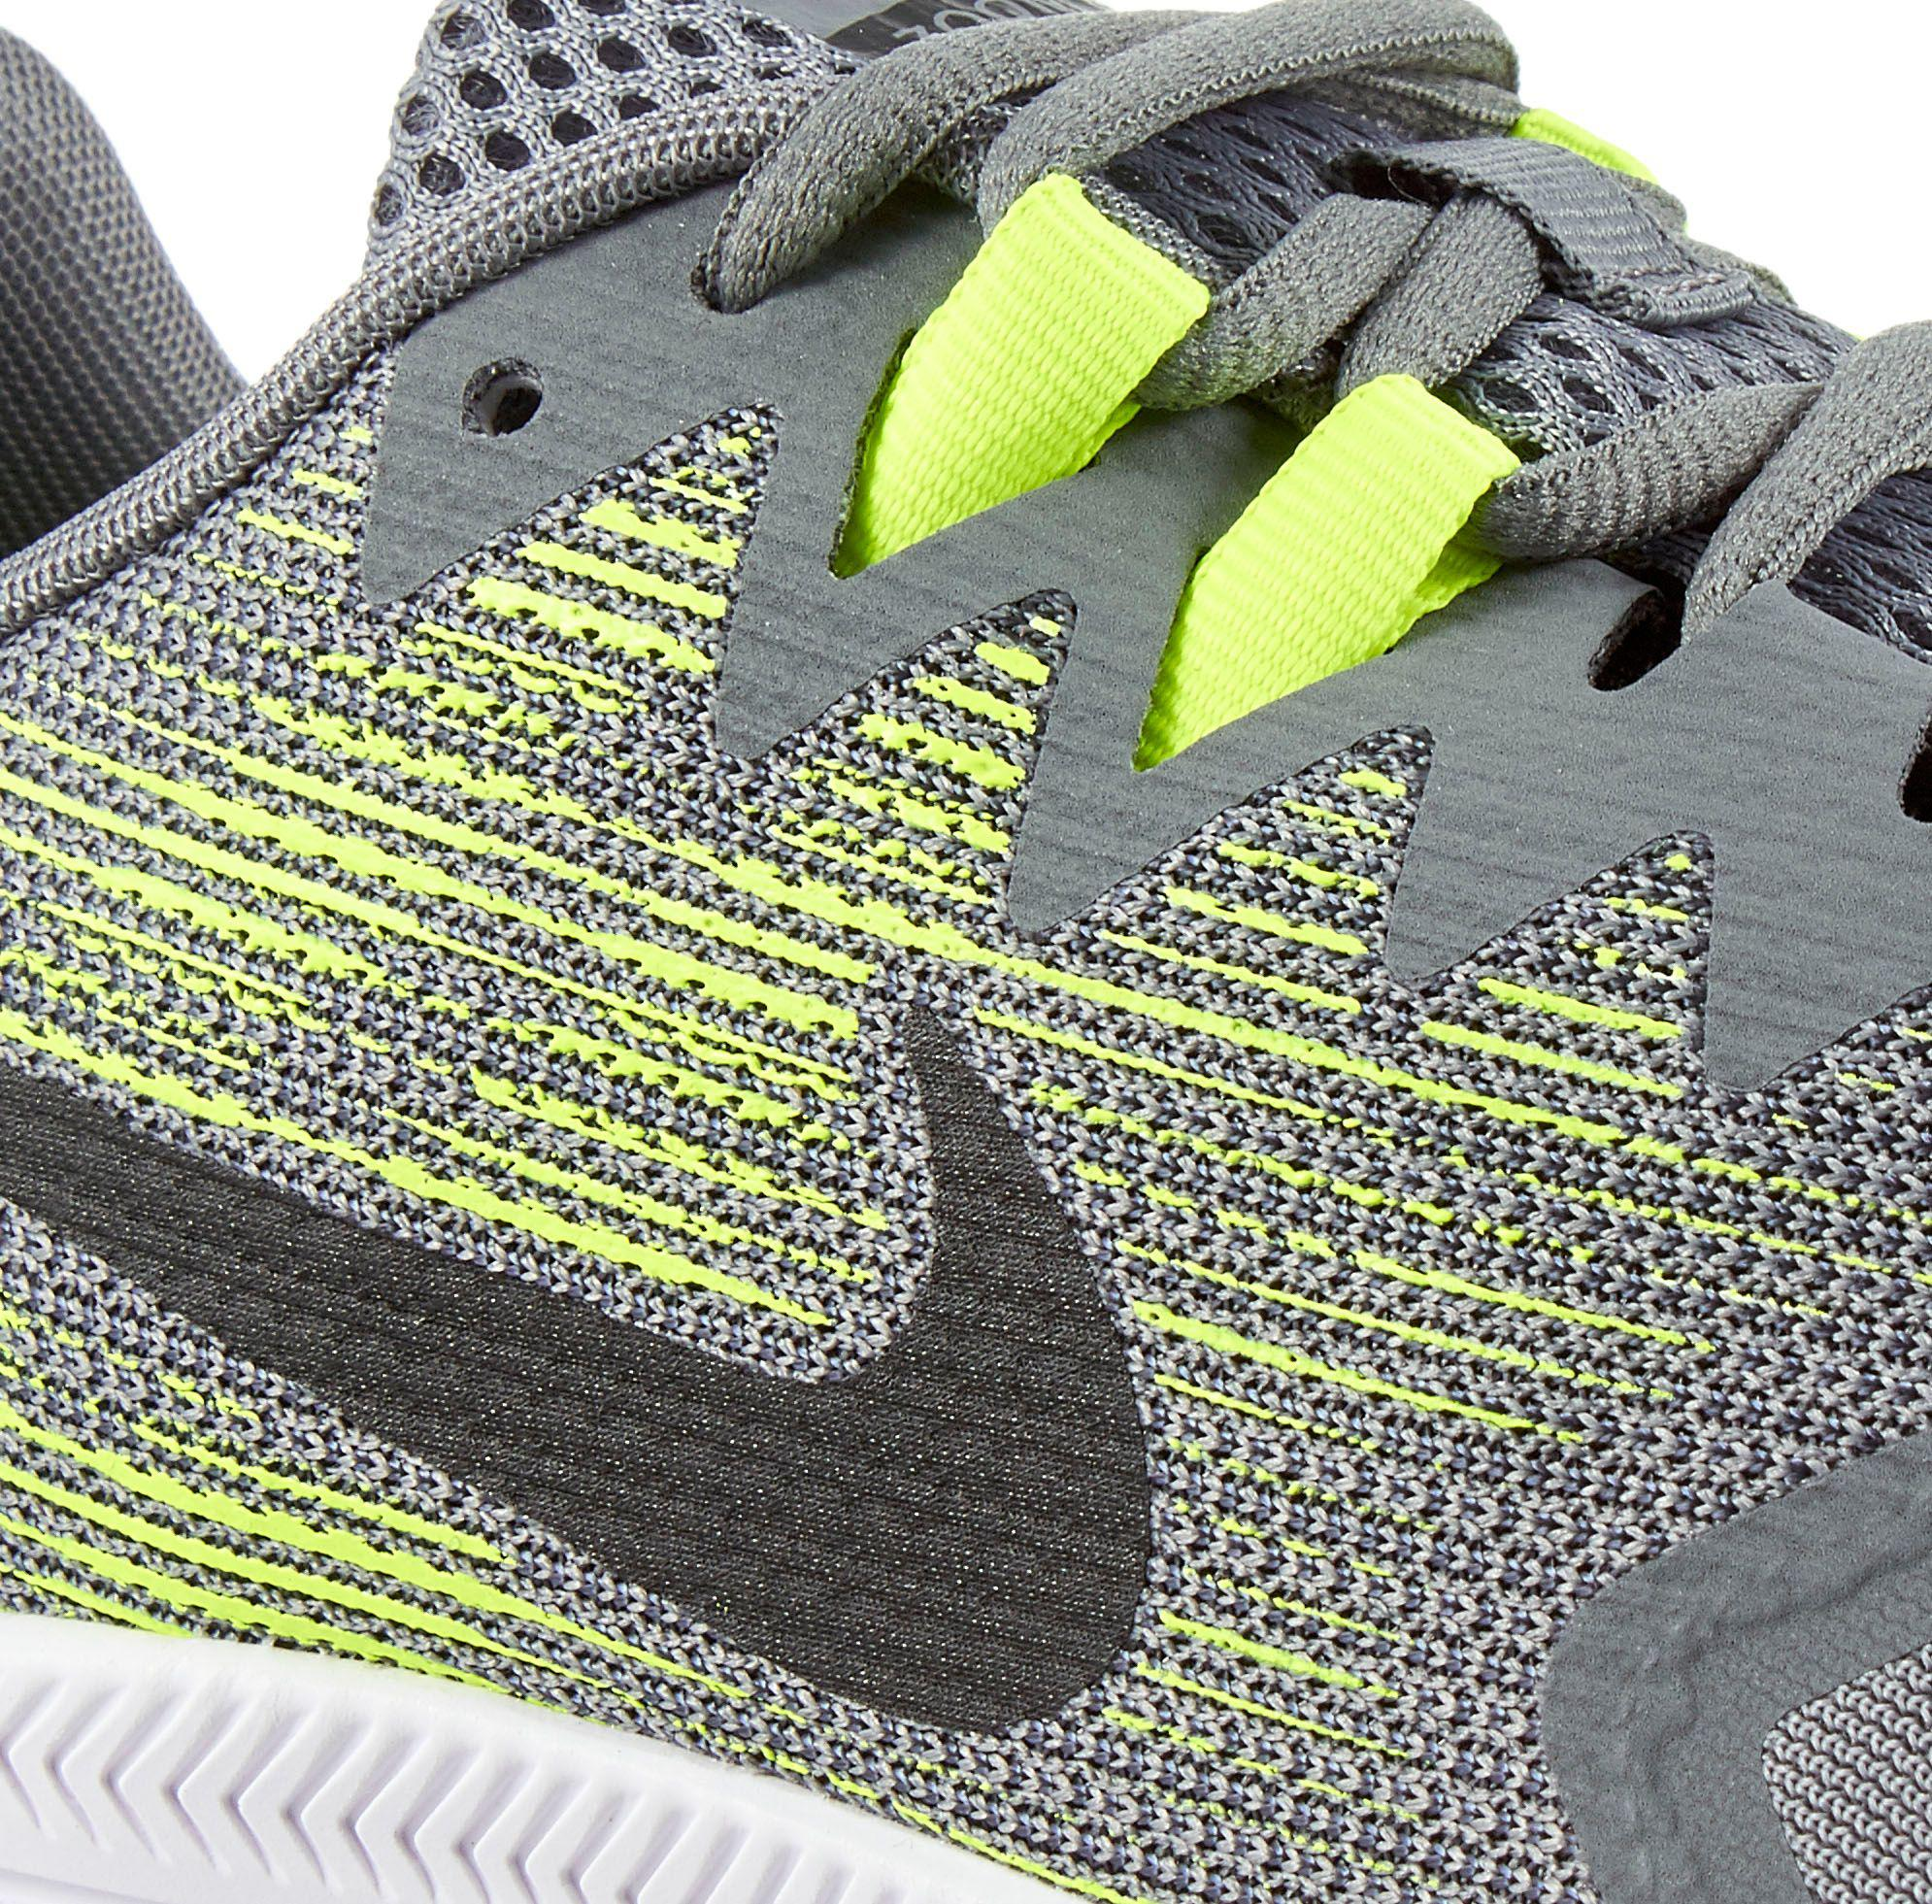 asp discounts sale img comforter to running home comfortable shoes up most nike